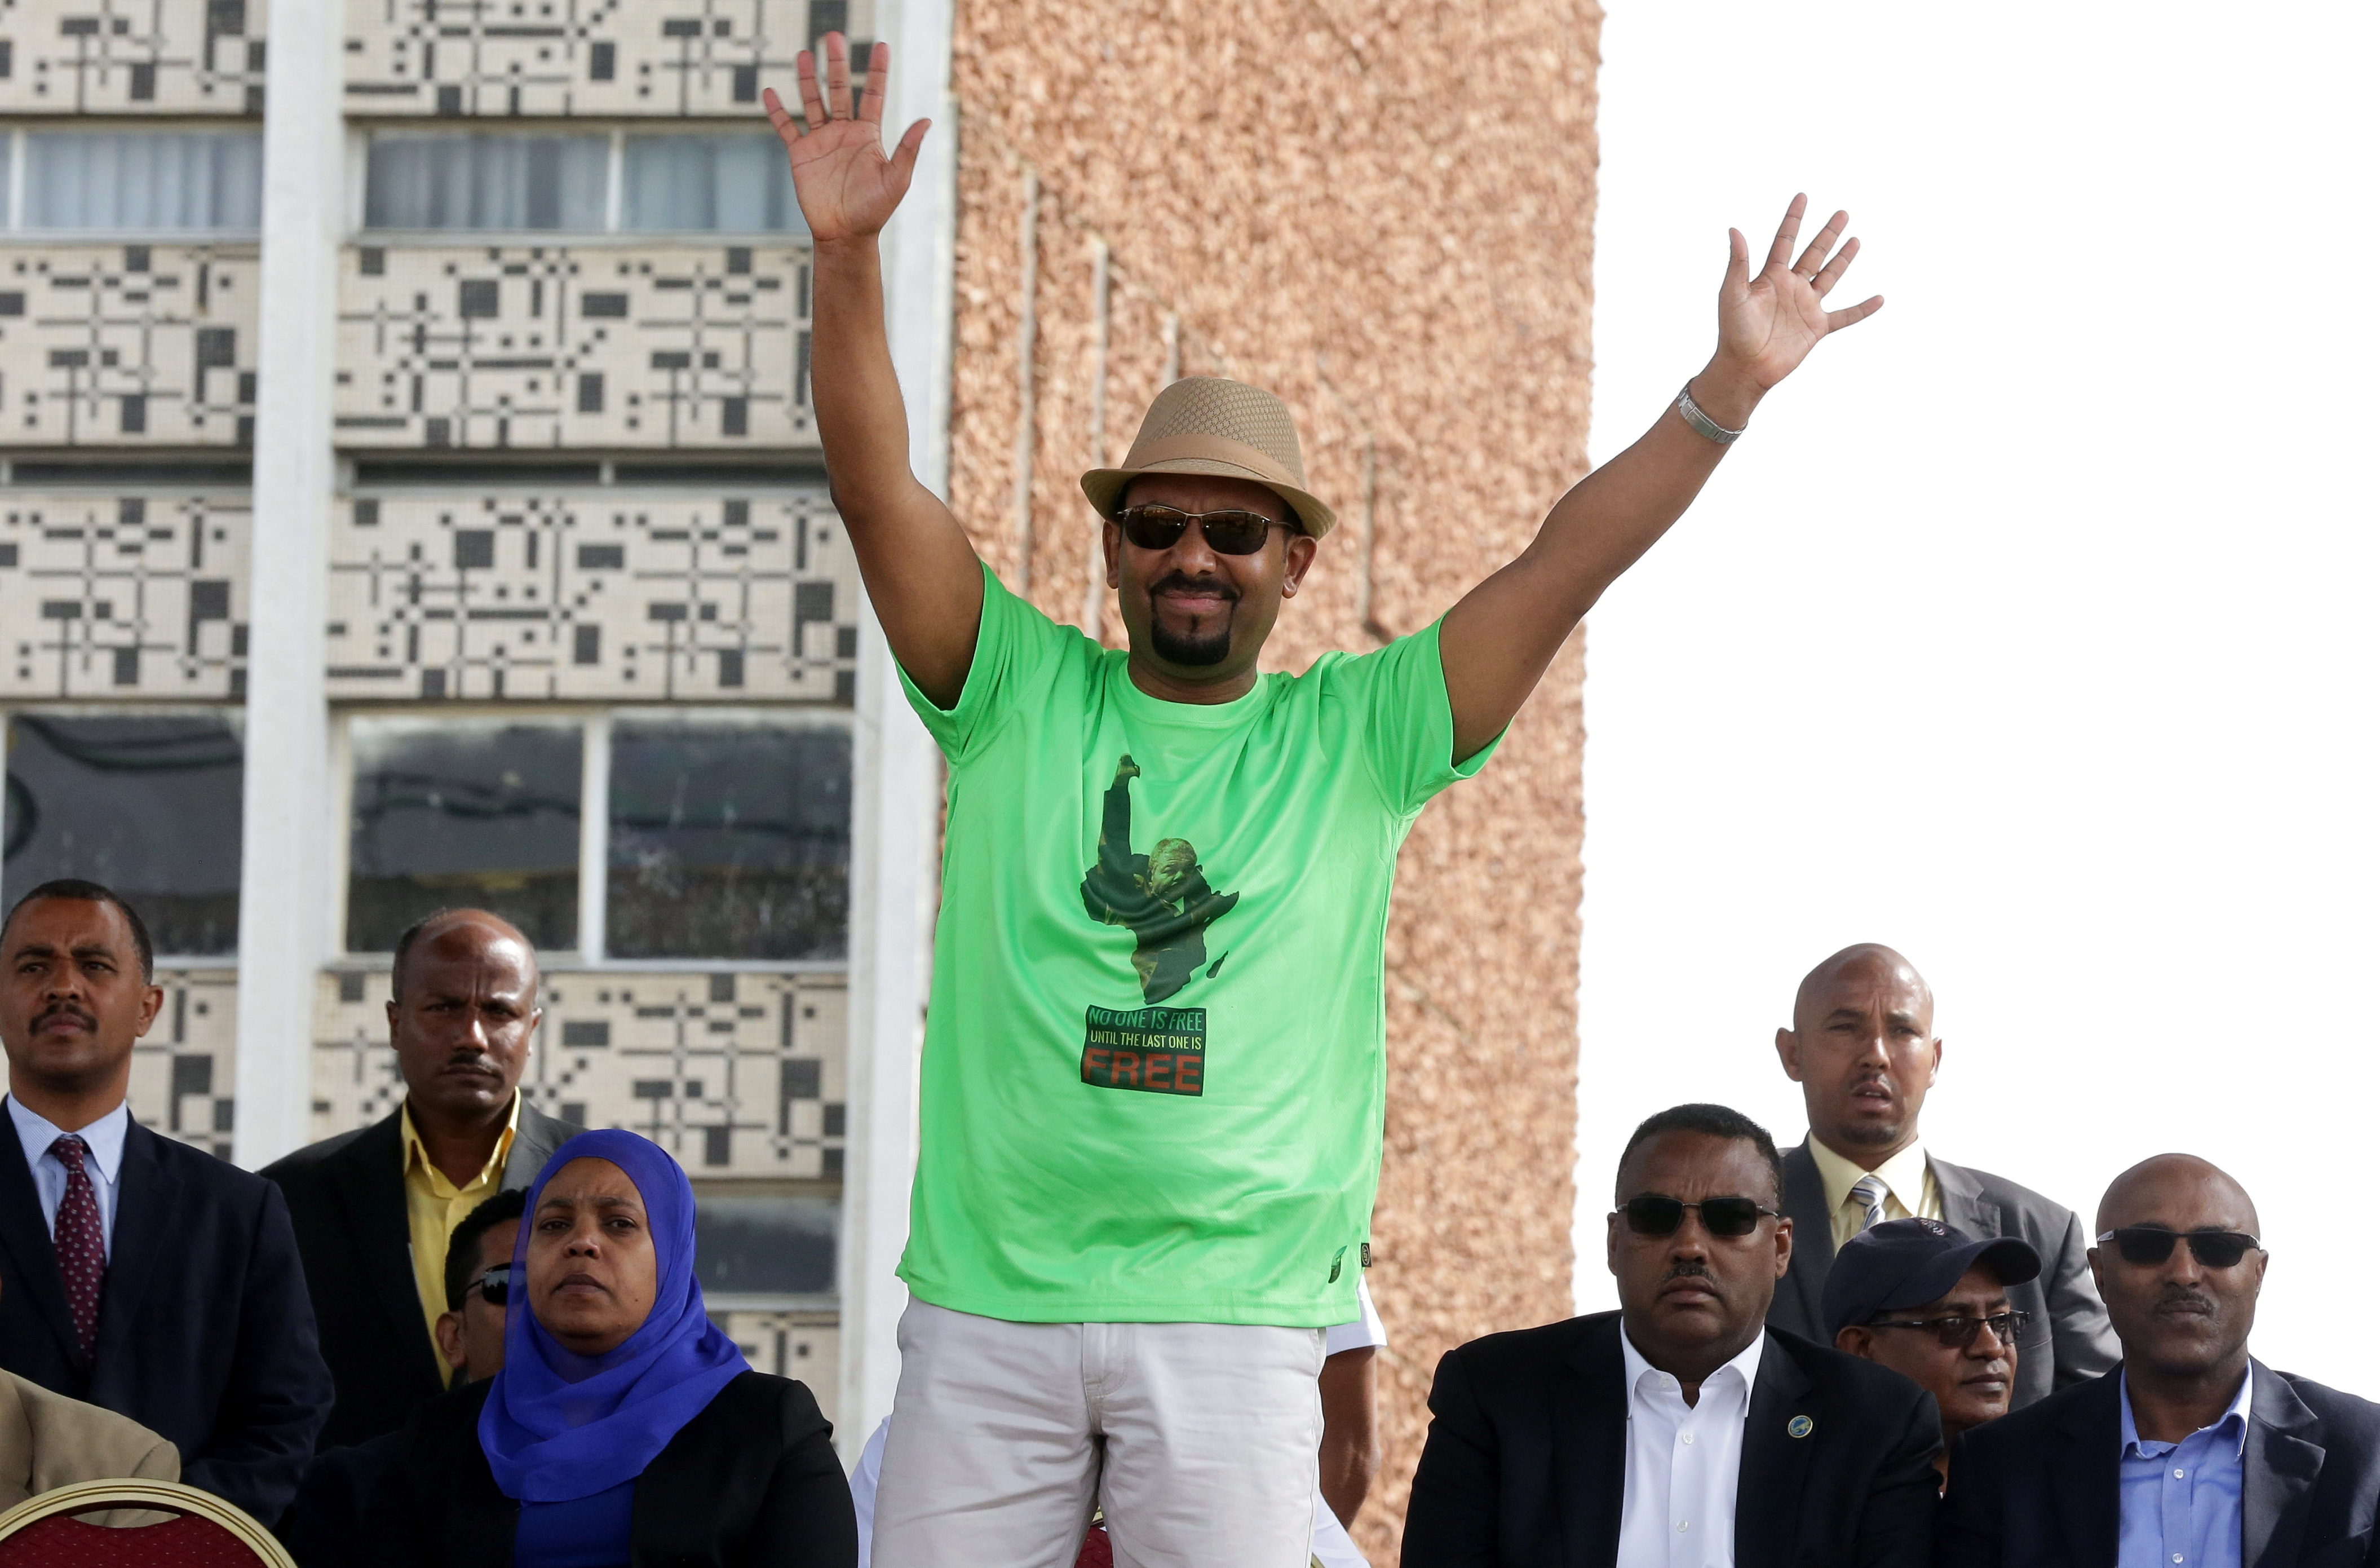 Ethiopian Prime Minister Abiy Ahmed waves to supporters as he attends a rally in Addis Ababa, Ethiopia, June 23, 2018.